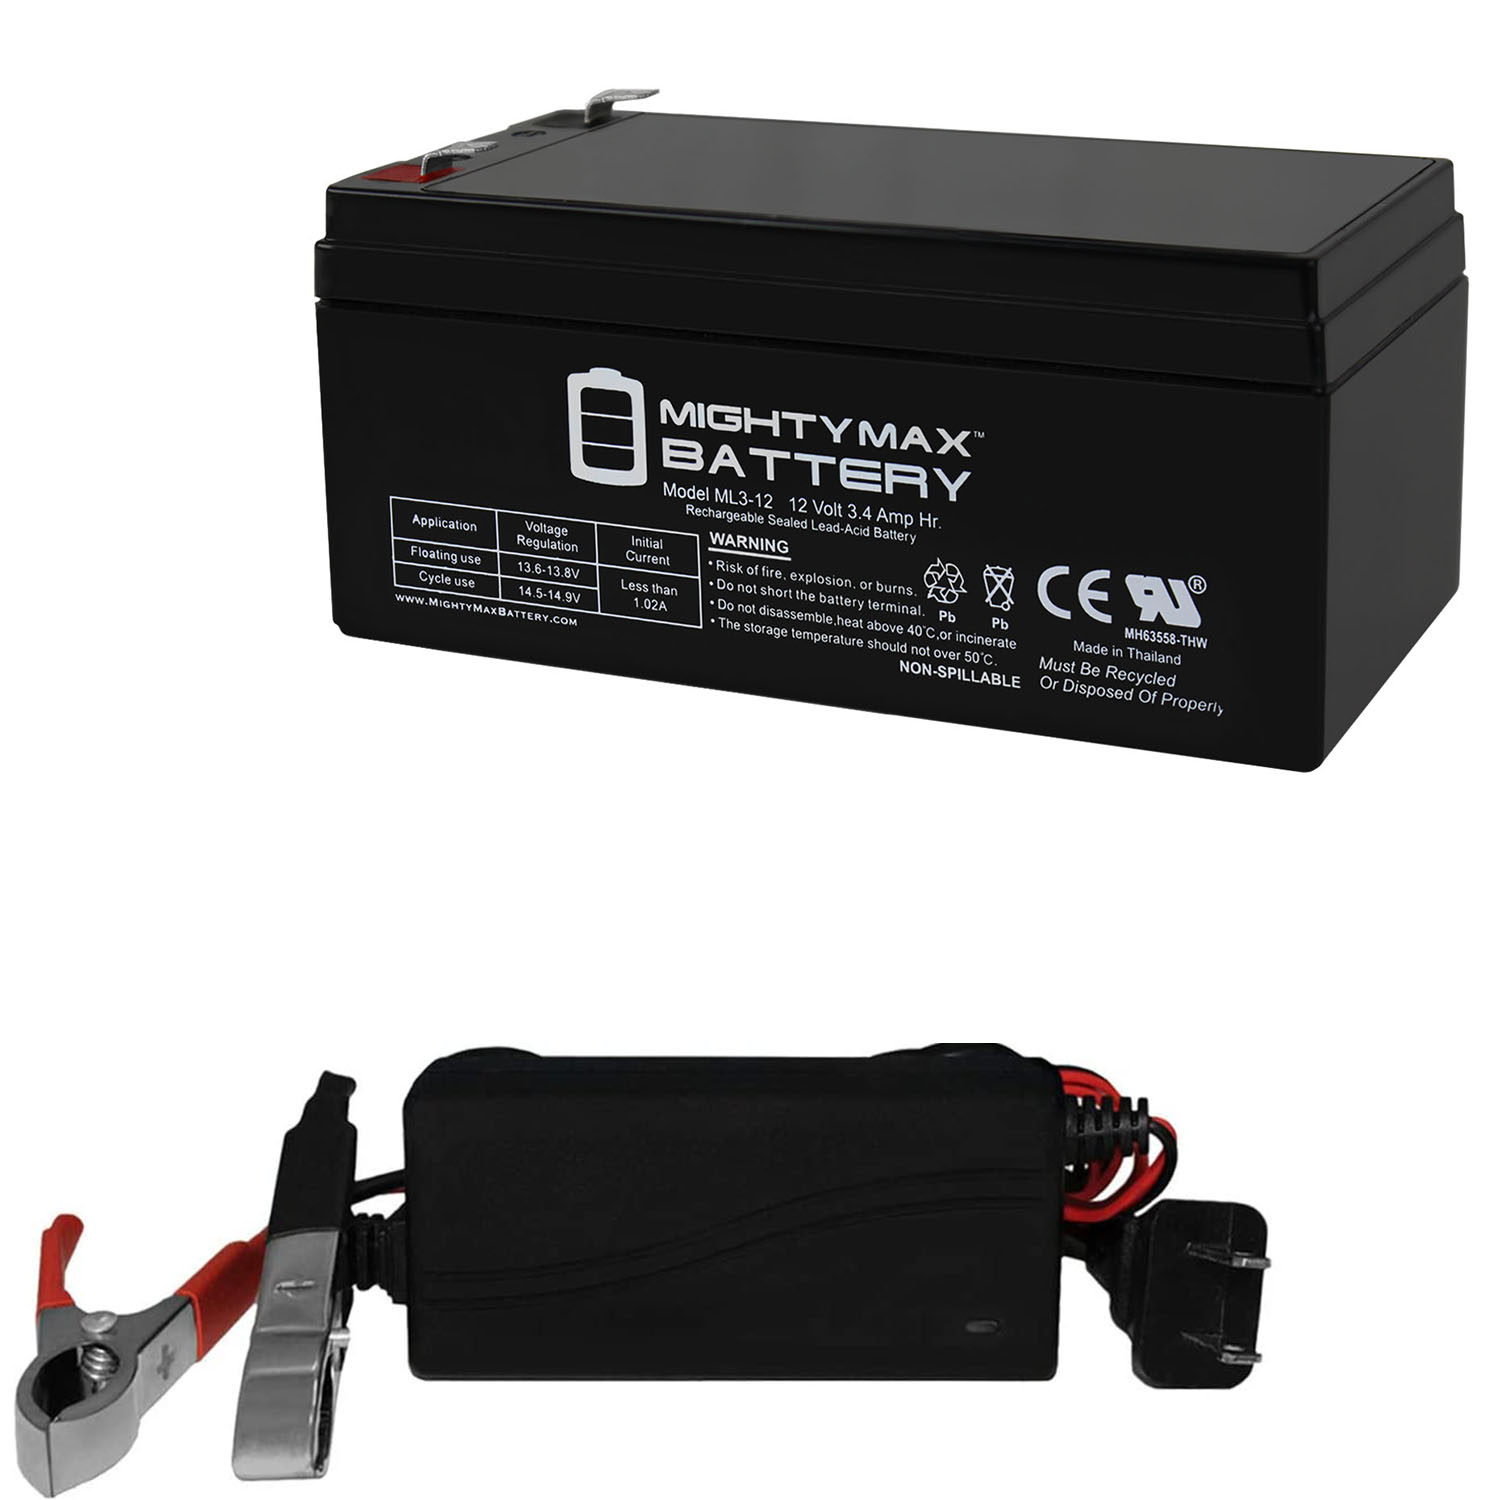 ML3-12 - 12 VOLT 3 AH SLA BATTERY INCLUDES 12V CHARGER